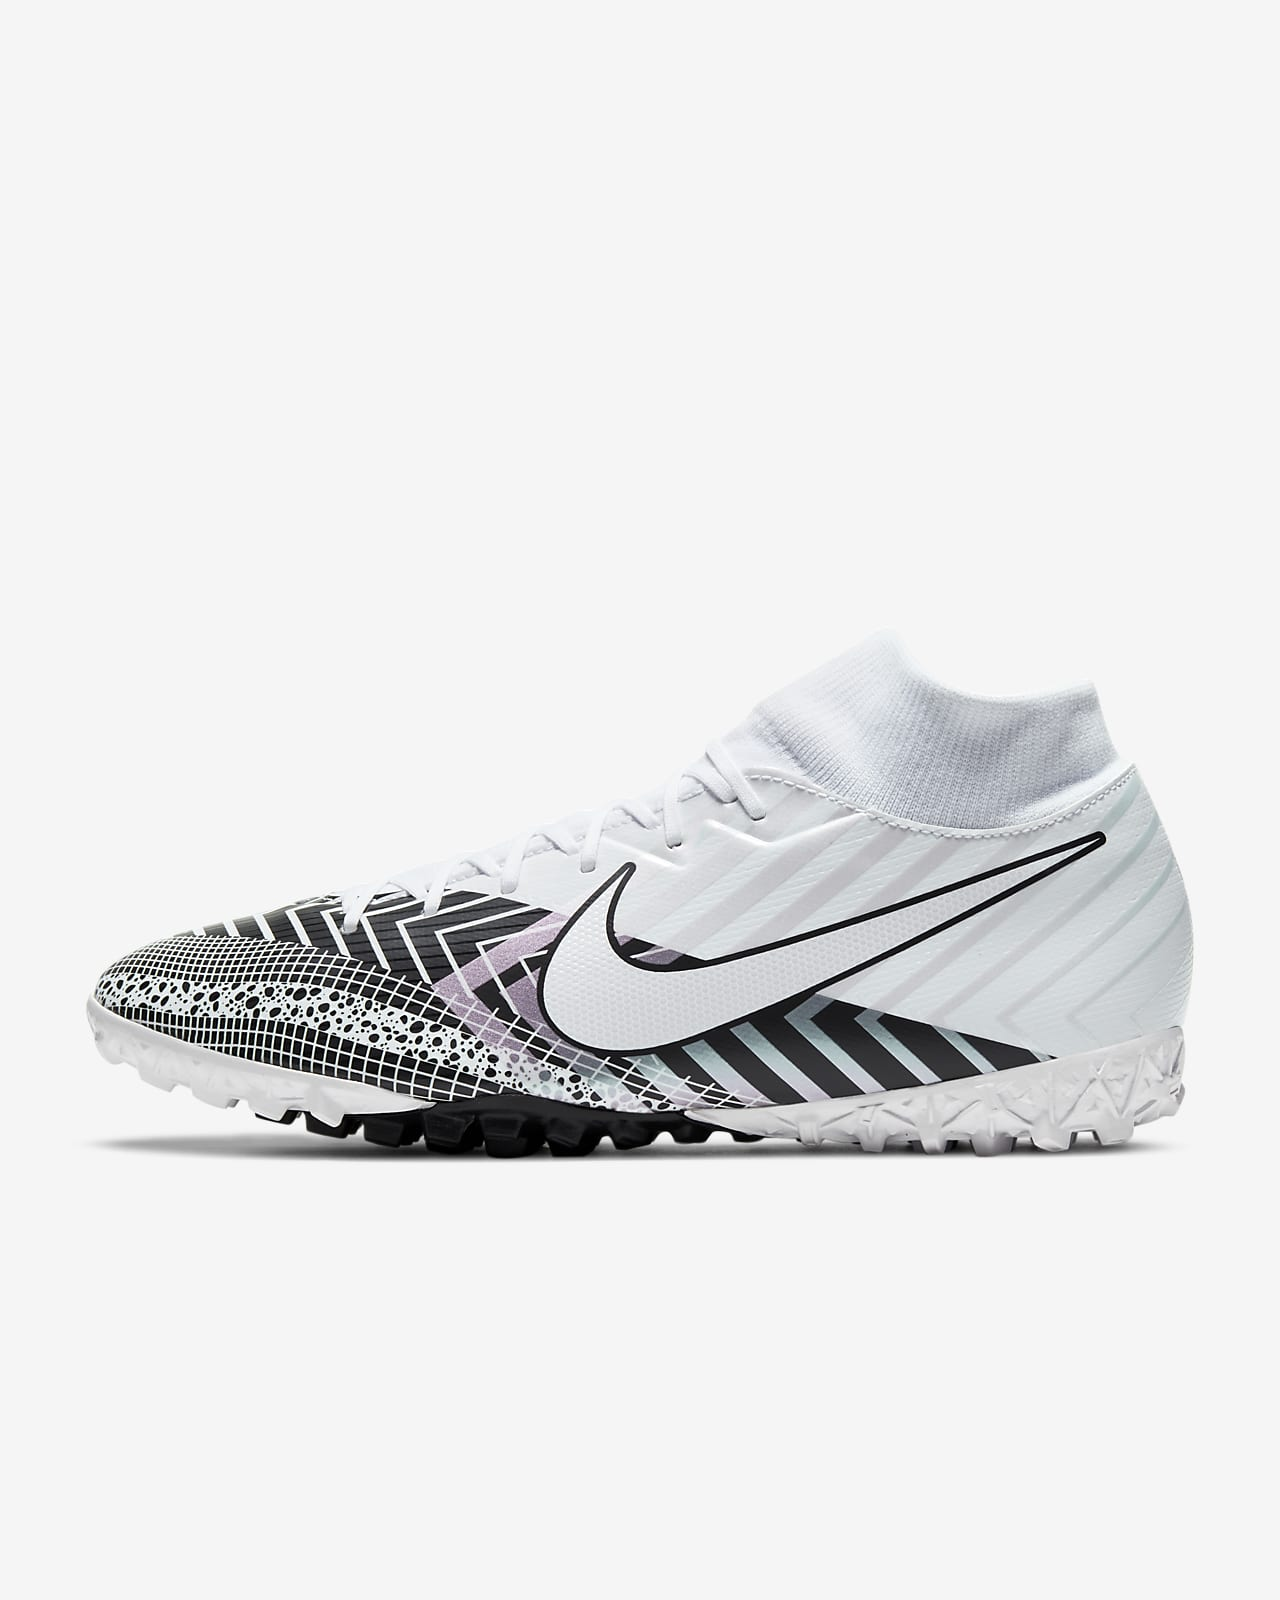 Nike Mercurial Superfly 7 Academy MDS